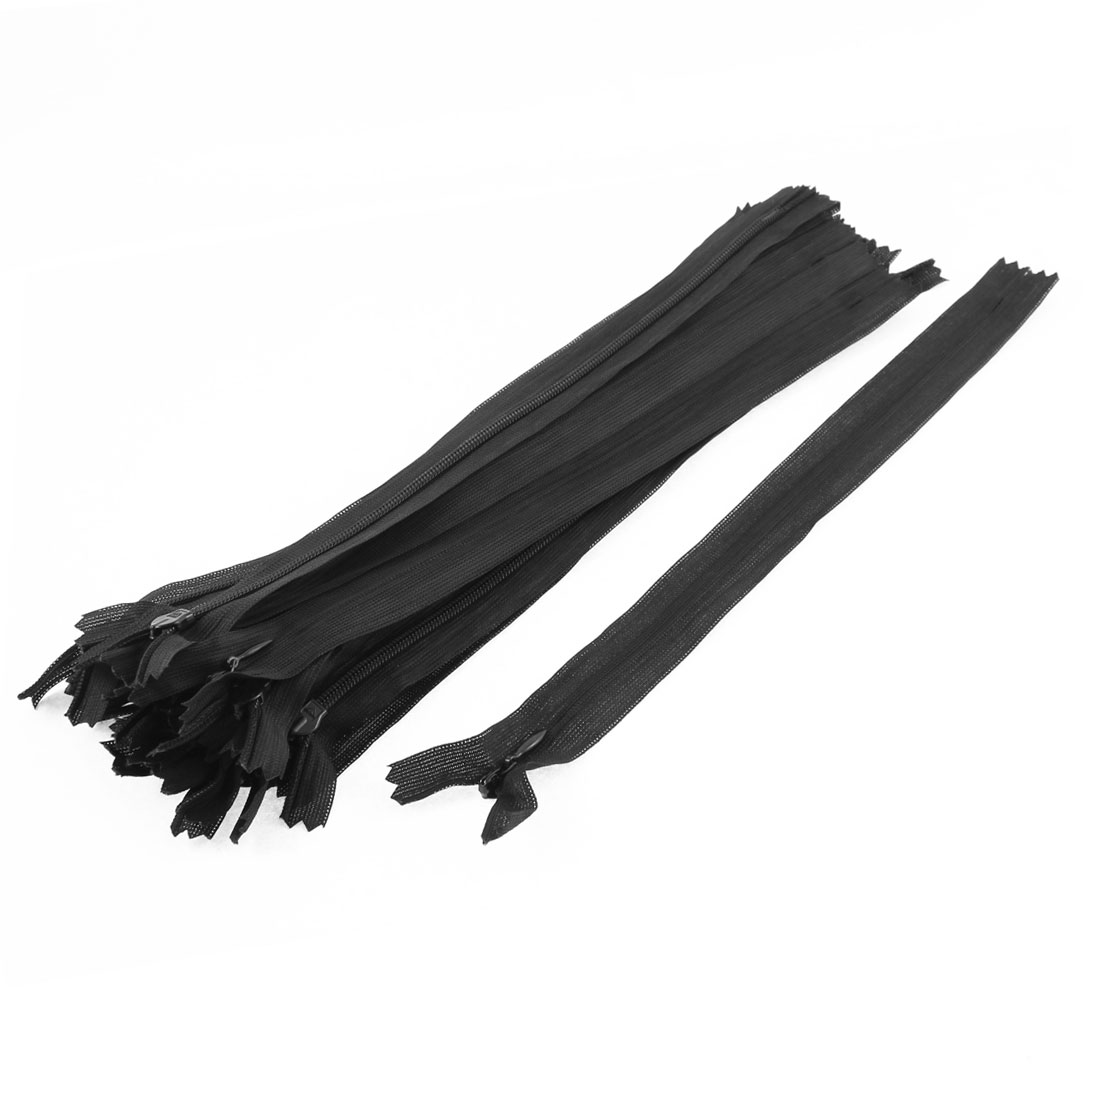 Unique Bargains Clothes Invisible Nylon Coil Zippers Tailor Sewing Craft Tool Black 25cm 20 Pcs for Home Essential